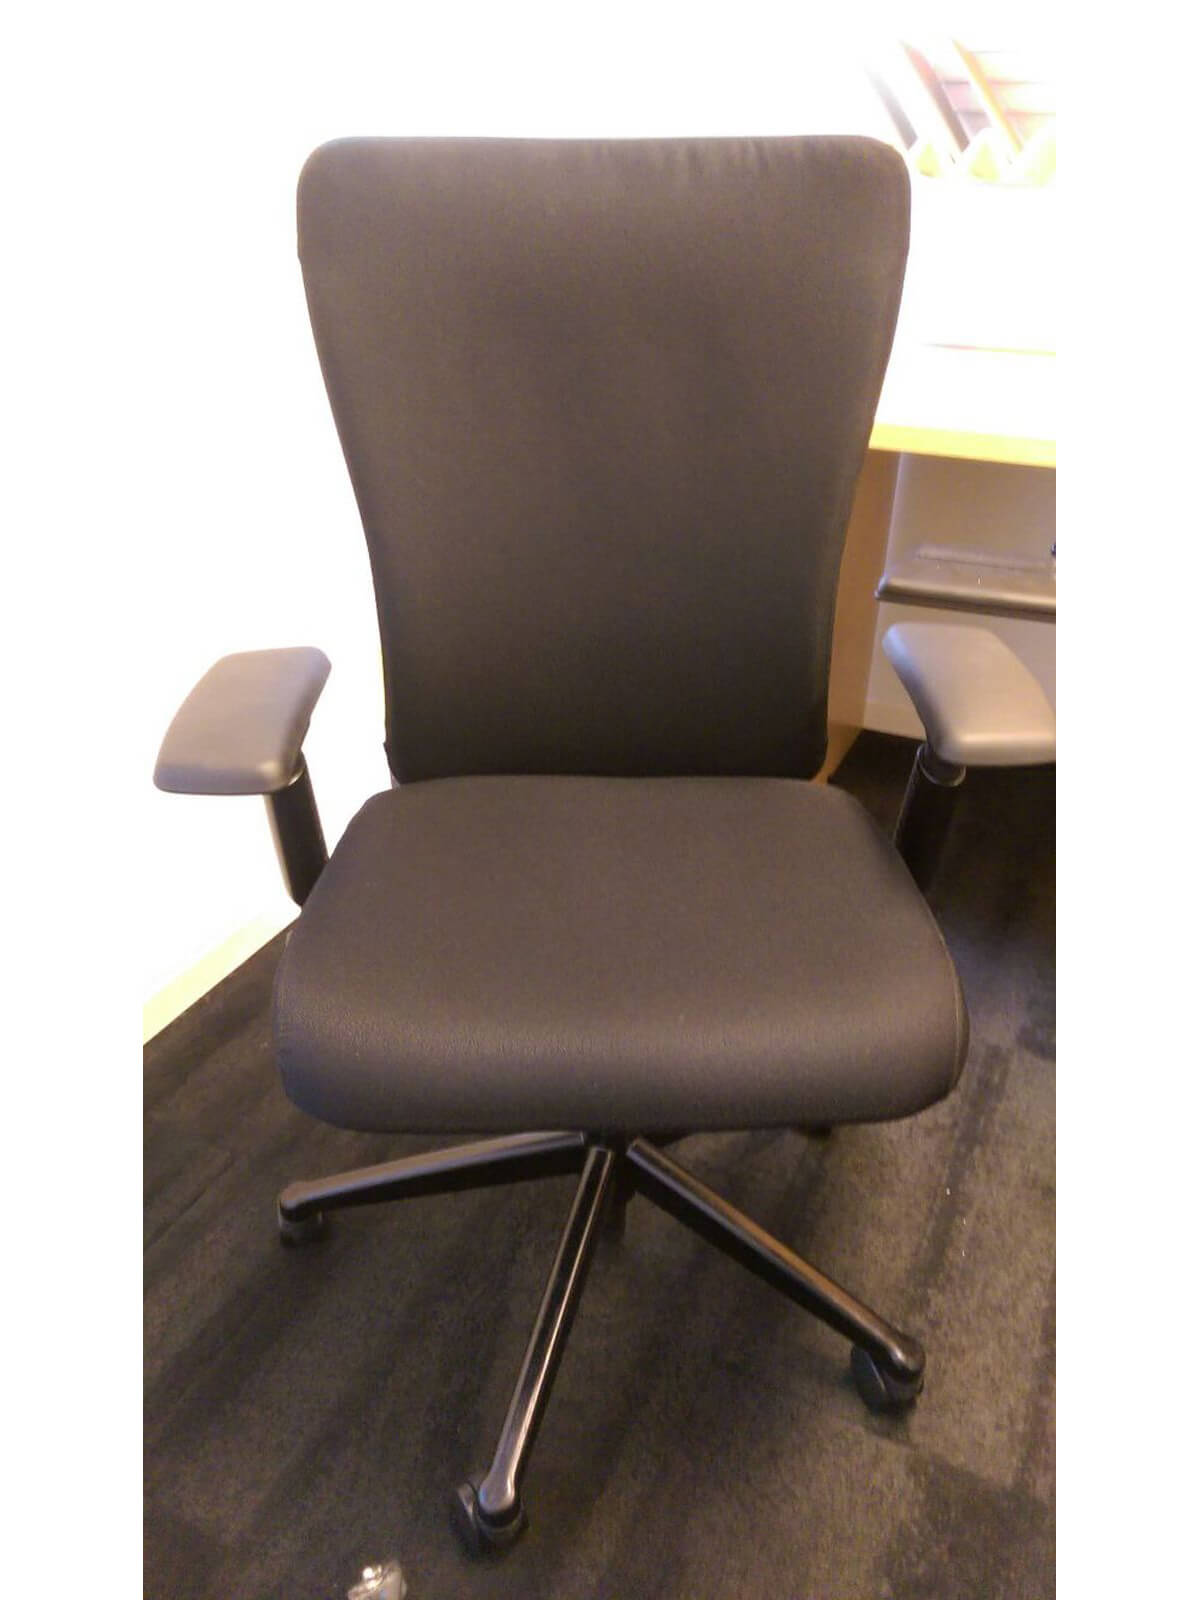 Haworth Zody Used Chairs Second Hand Office Chairs